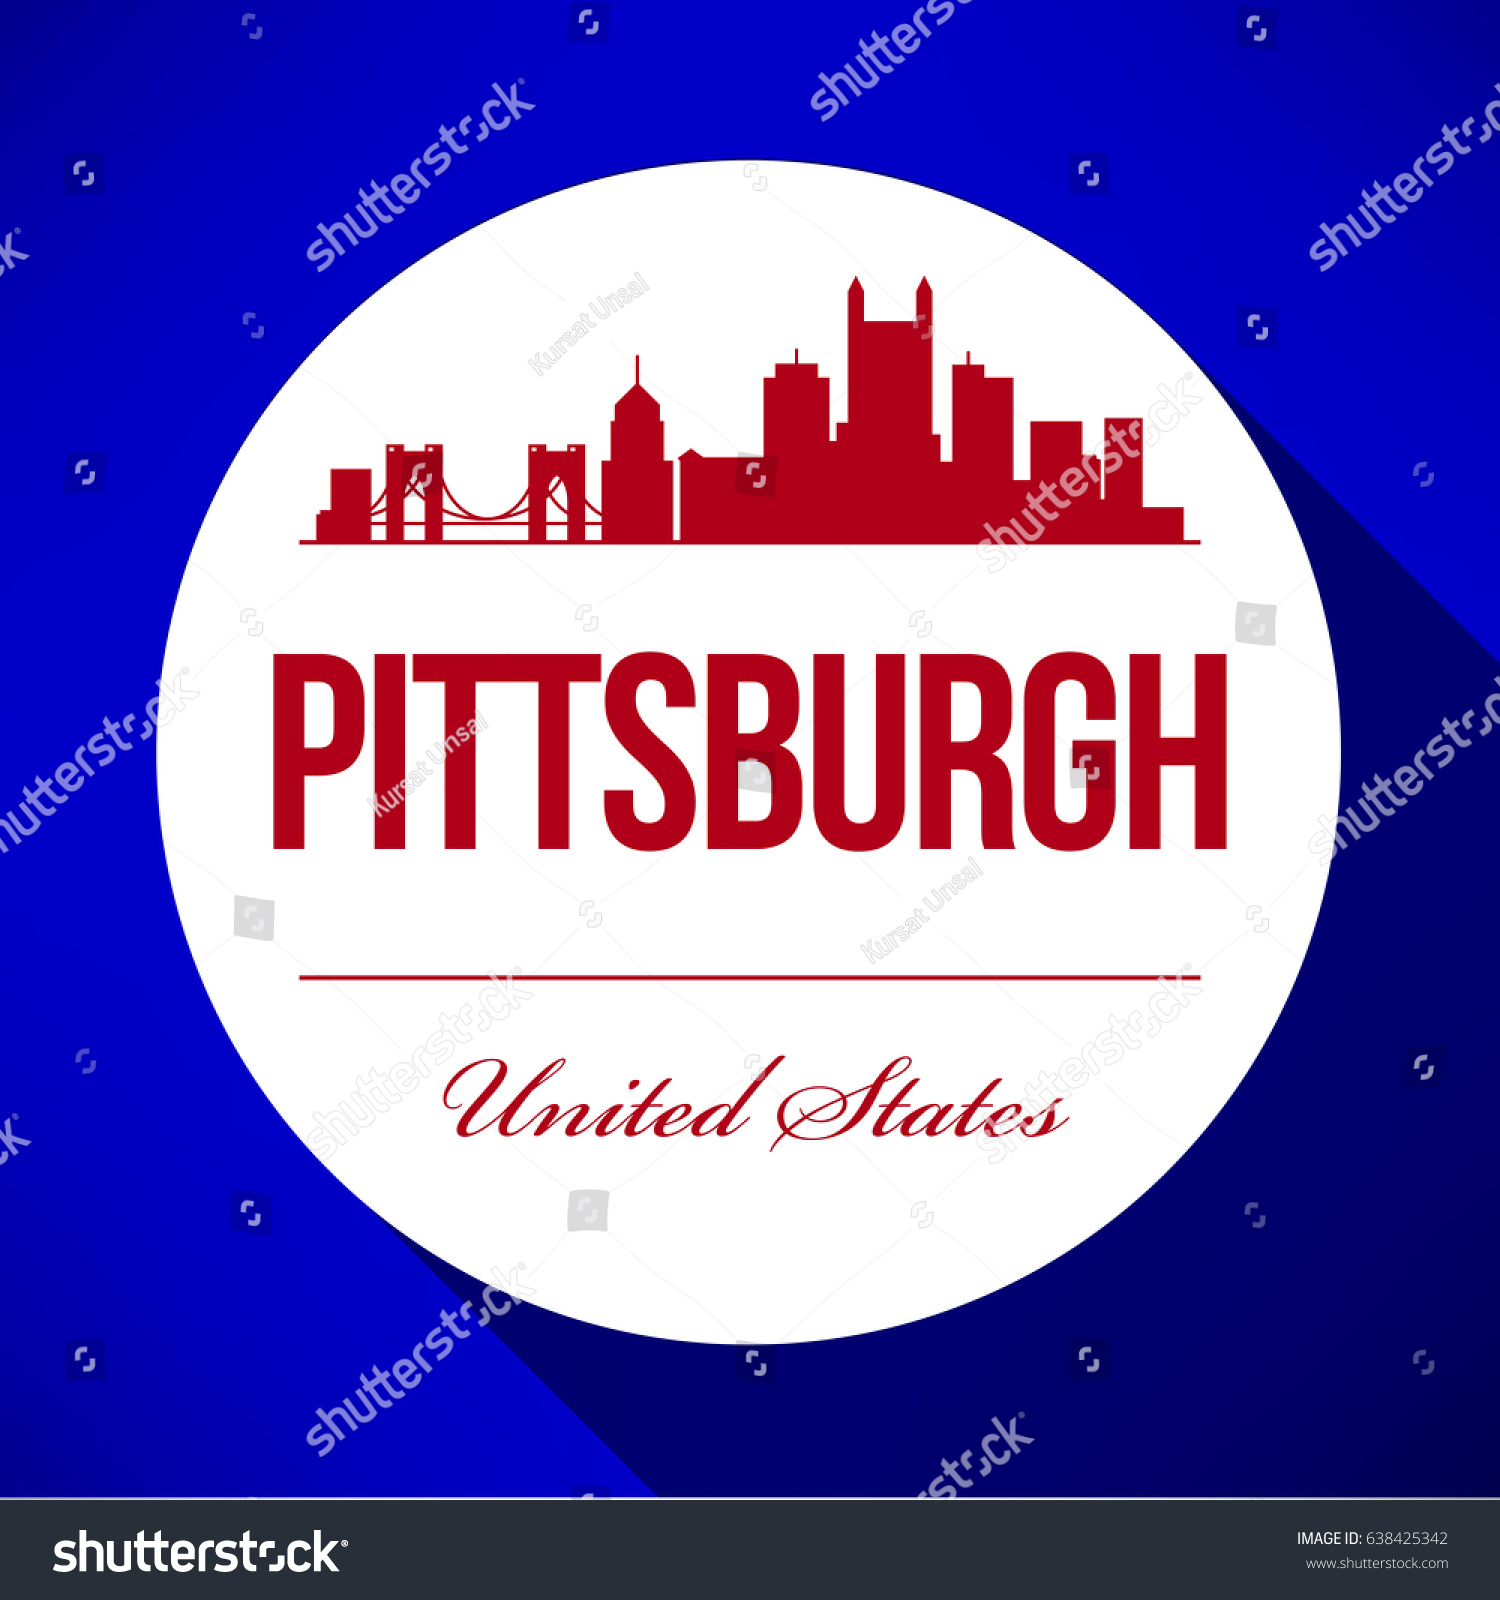 Vector Graphic Design Pittsburgh City Skyline Royalty Free Stock Image,Simple Blouse Designs Front And Back Images